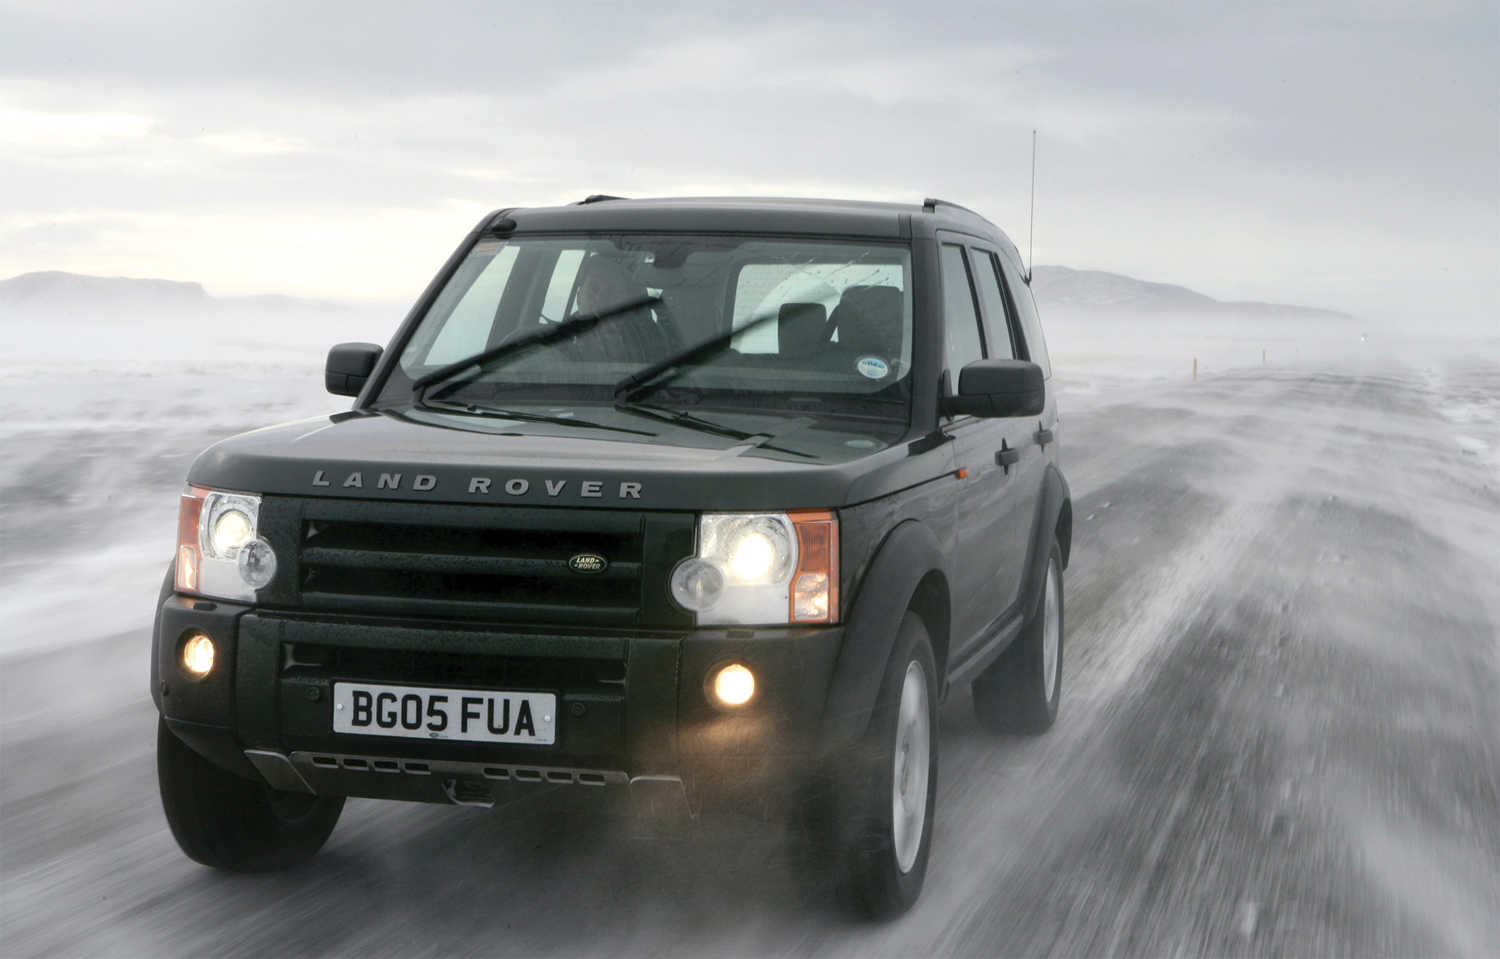 landrover edition luxury rover l limited front land hse images discovery wallpaper cars